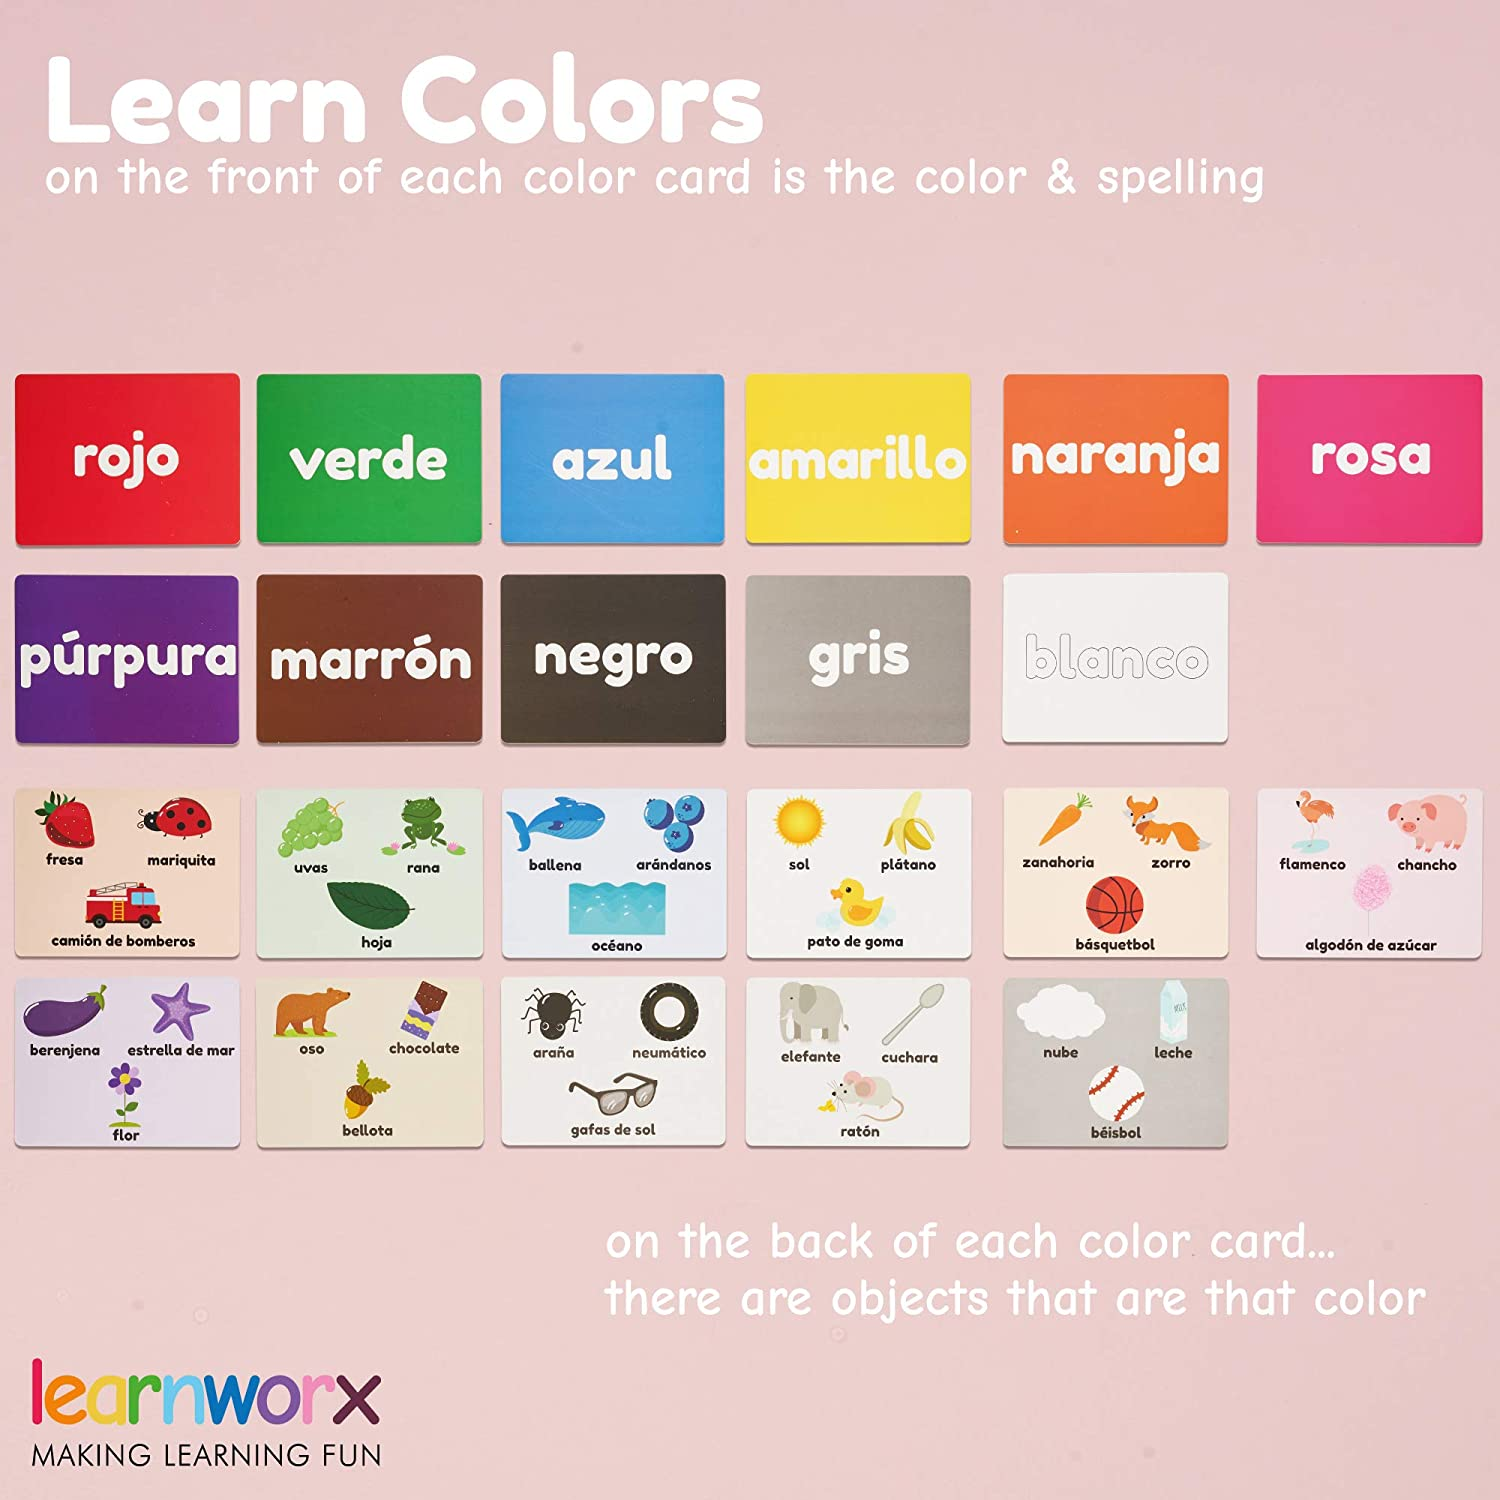 Counting 101 Cards Colors Spanish Flash Cards for Kids and Toddlers Body Parts 202 Sides Numbers Fun Learning and Educational Flashcards Letters /& More Learn Shapes Great Value